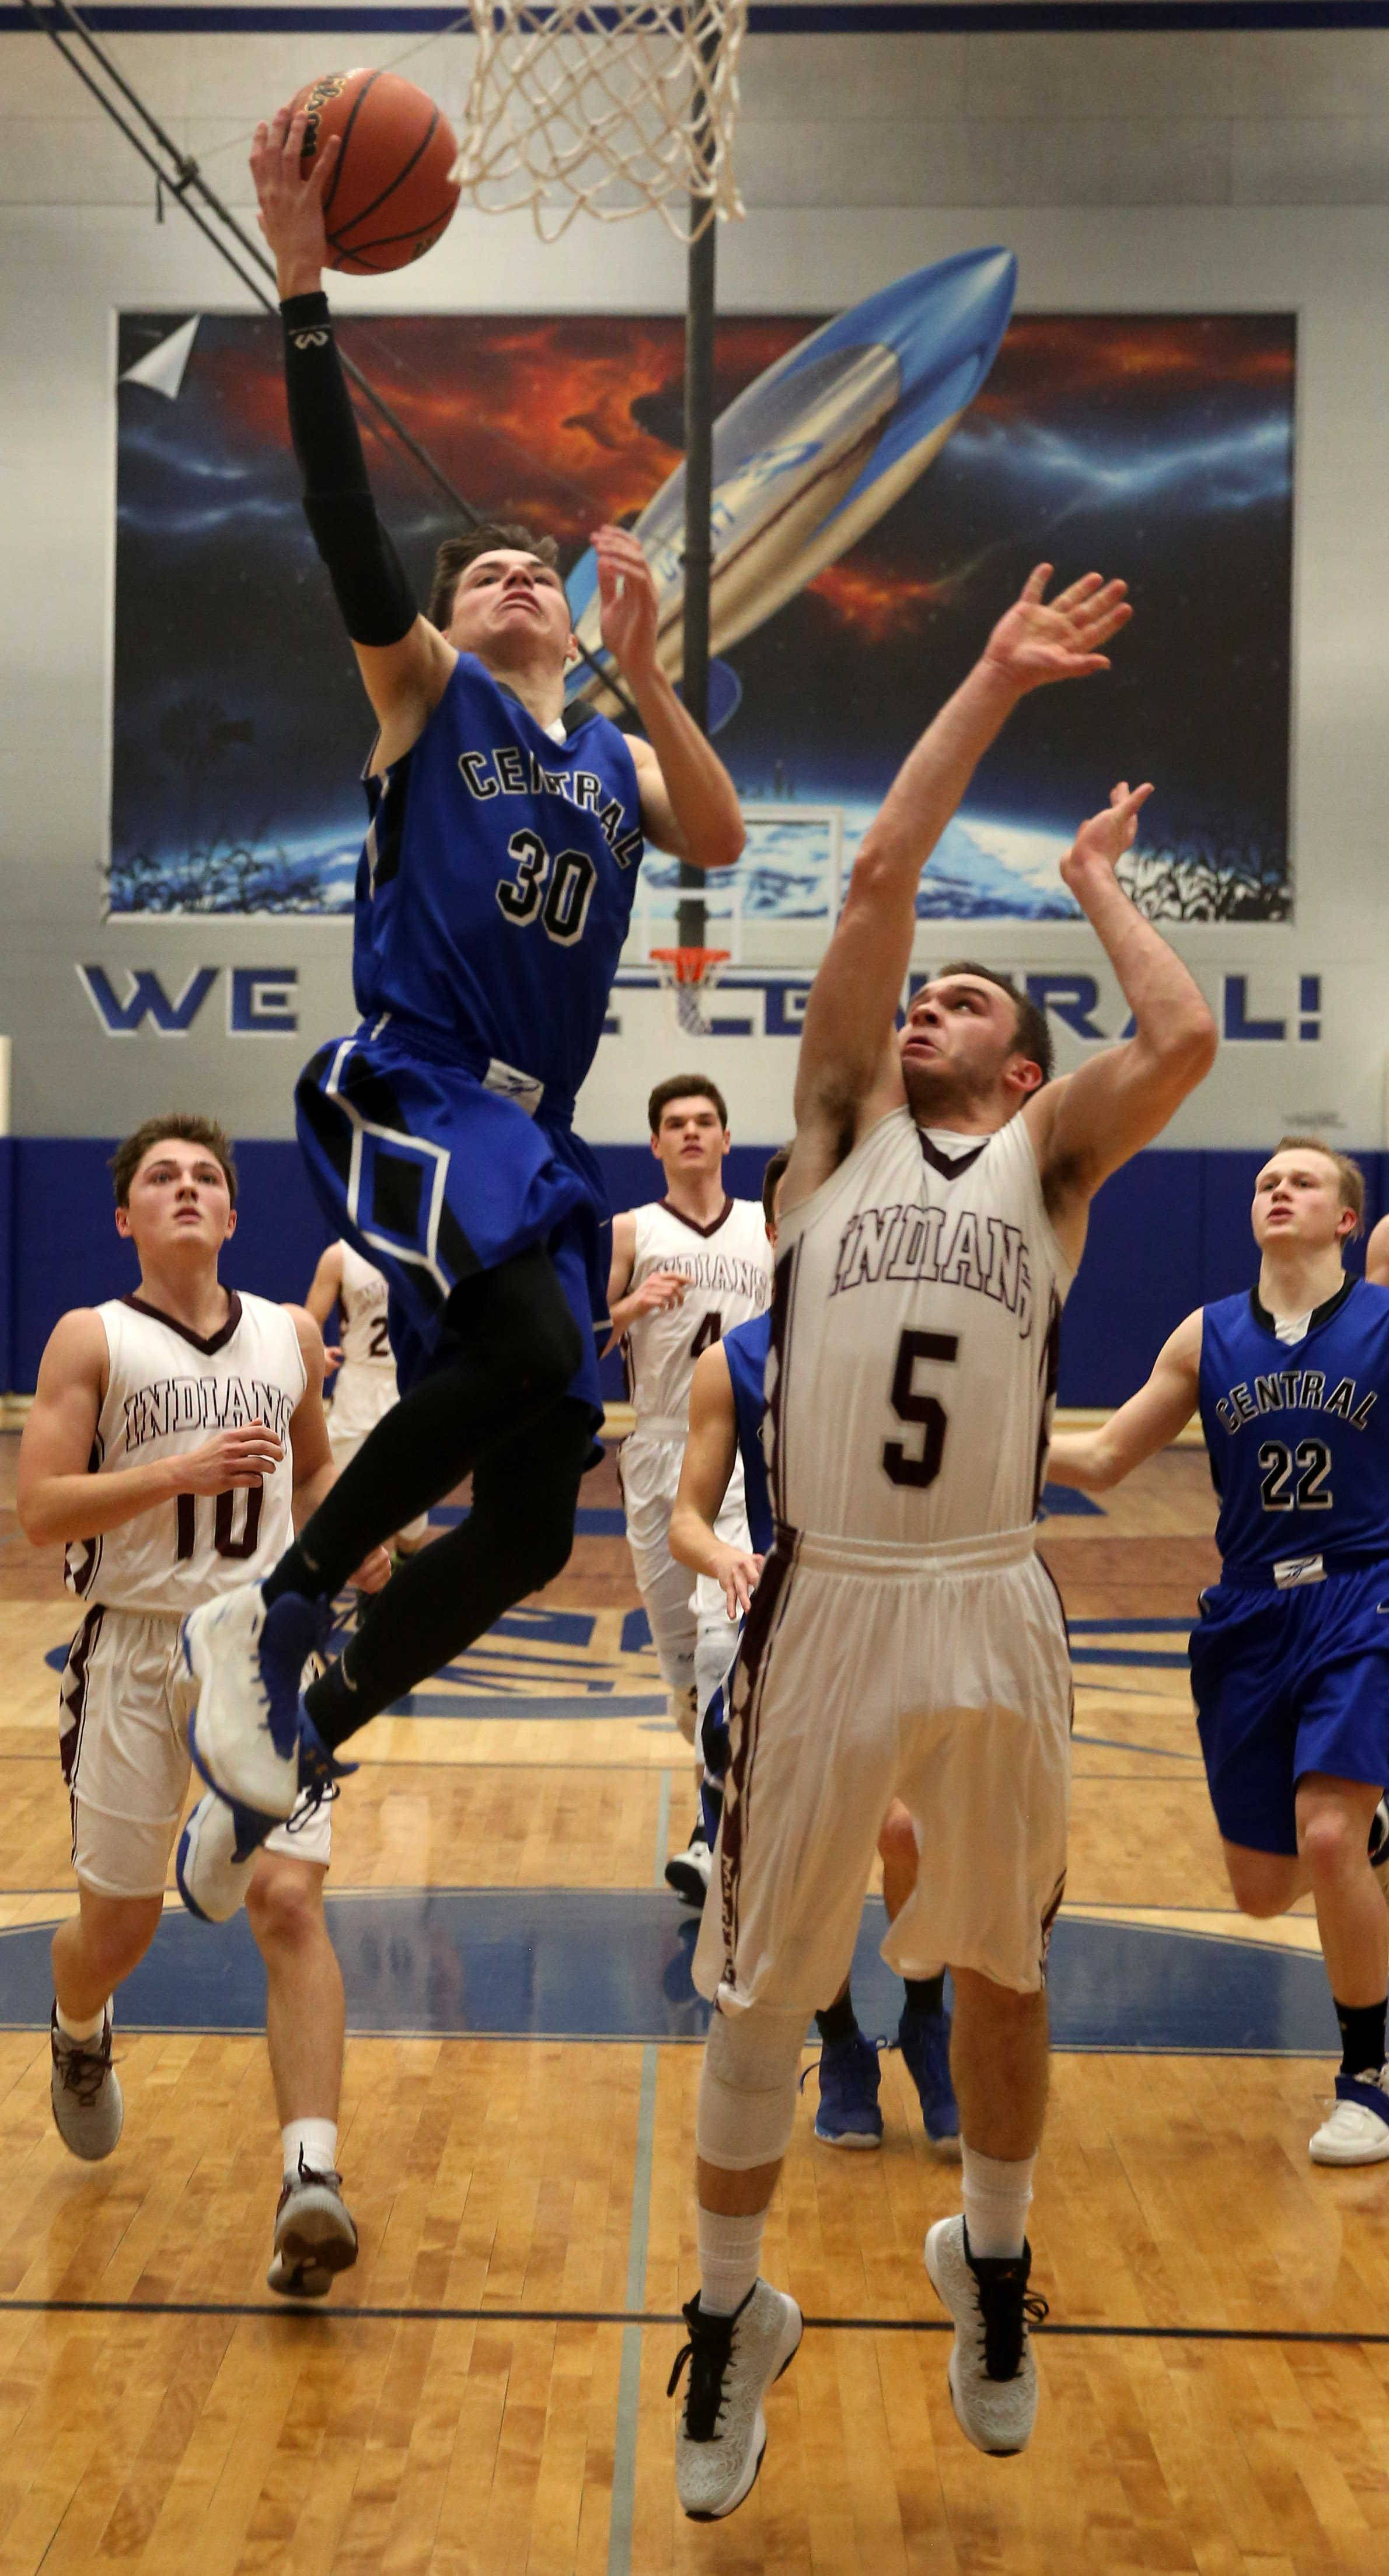 Burlington Central's Michael Kalusa soars past Marengo's Blaine Borhart during the title game of the MLK Classic tournament at Burlington Monday night.